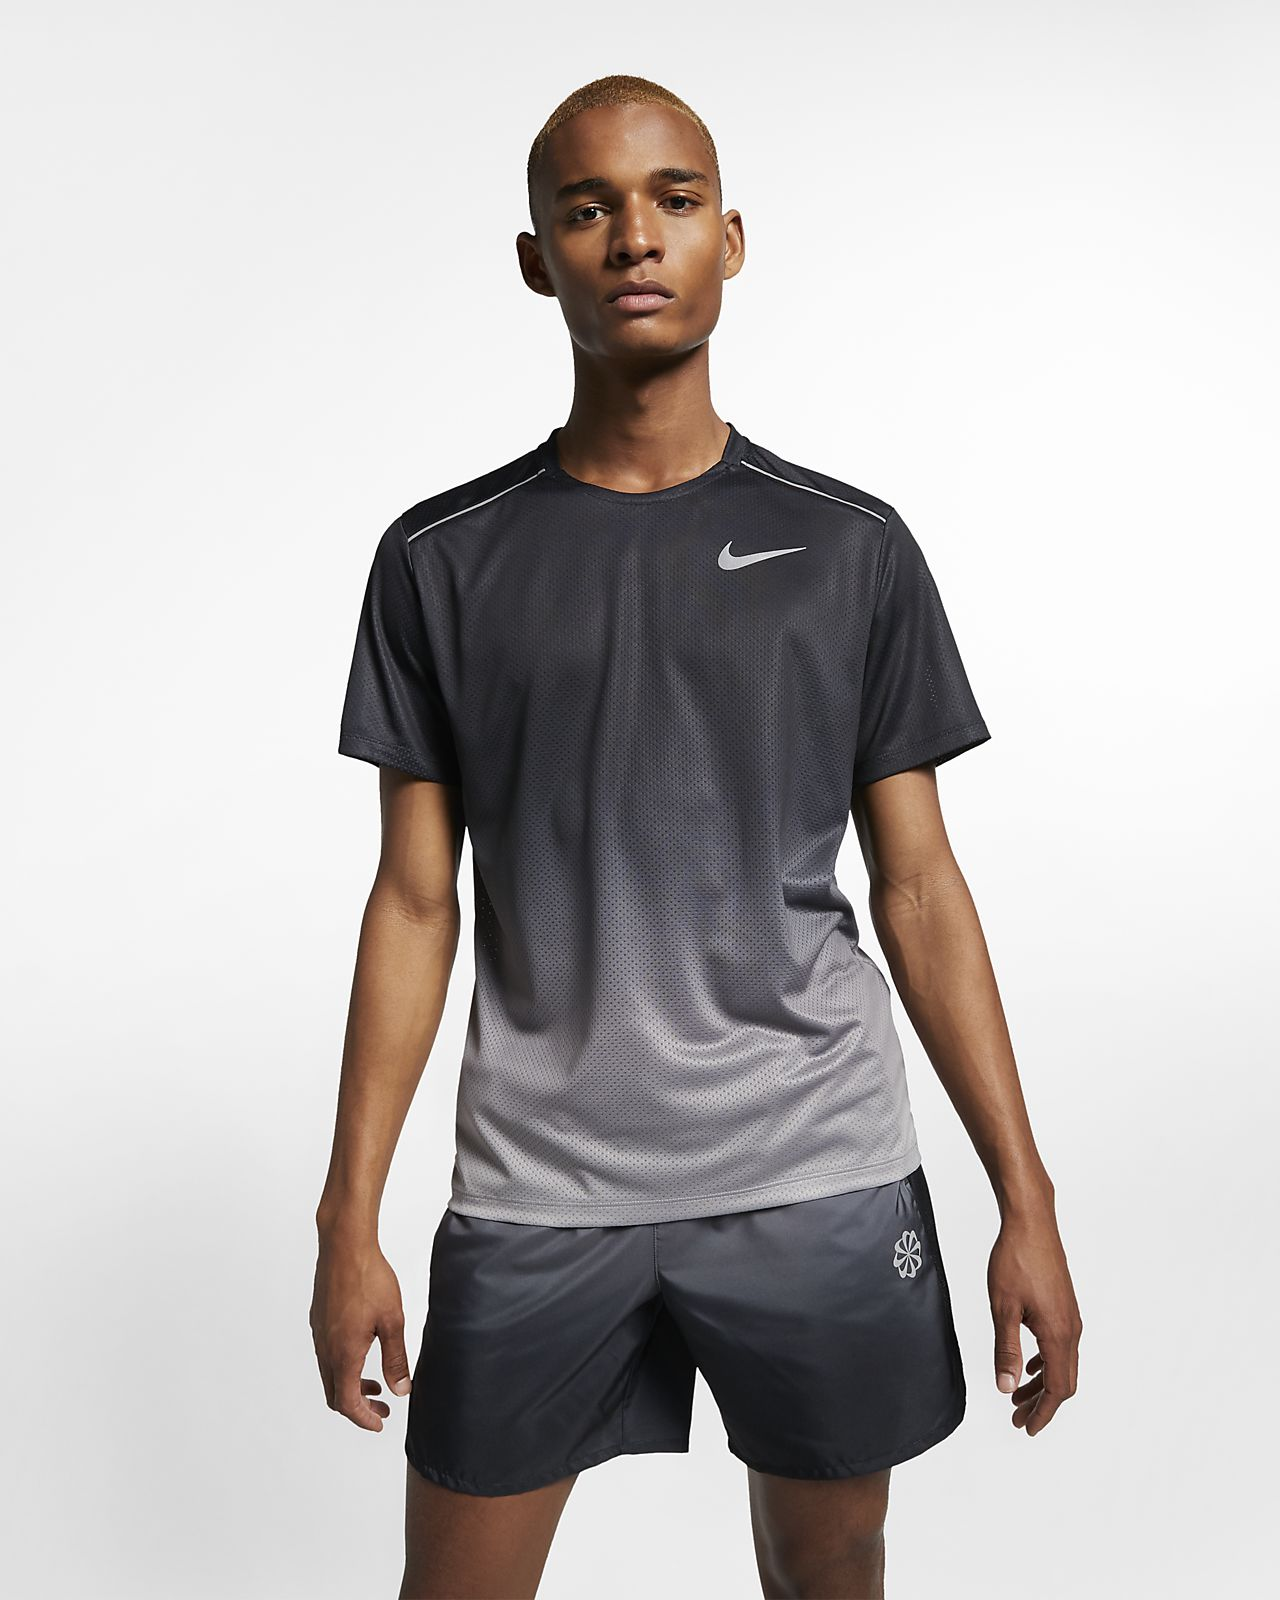 15c7ea8b0 Nike Dri-FIT Miler Men's Short-Sleeve Printed Running Top. Nike.com